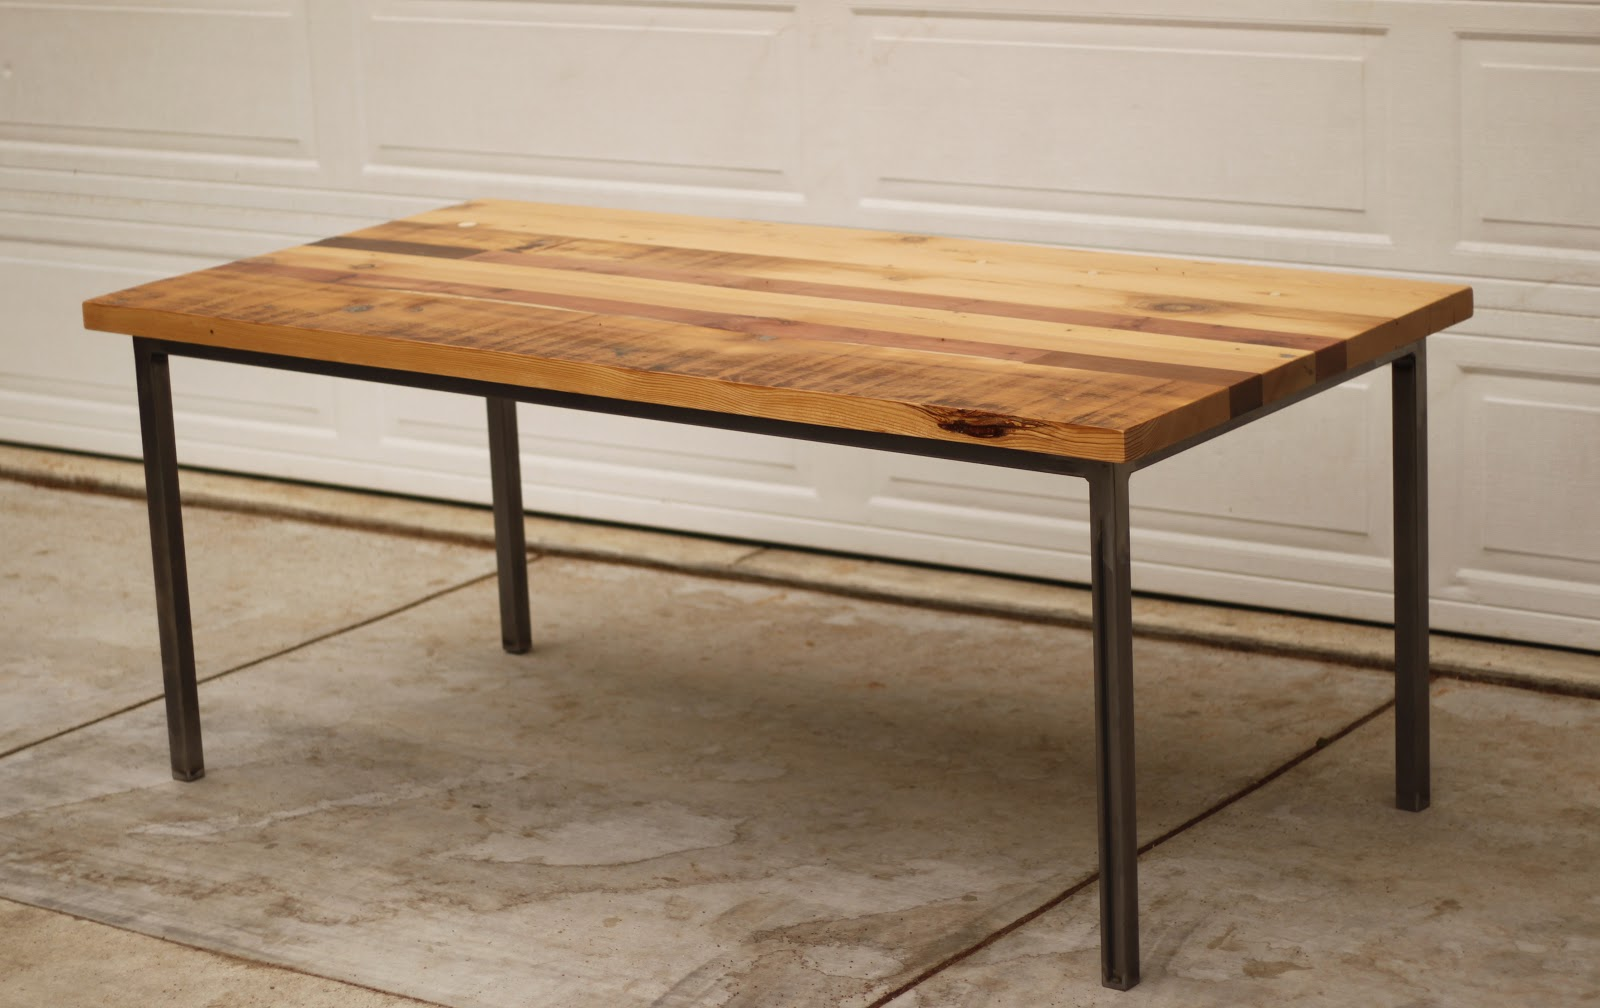 Arbor Exchange : Reclaimed Wood Furniture: Patchwork Table w/ Metal Tubing Base